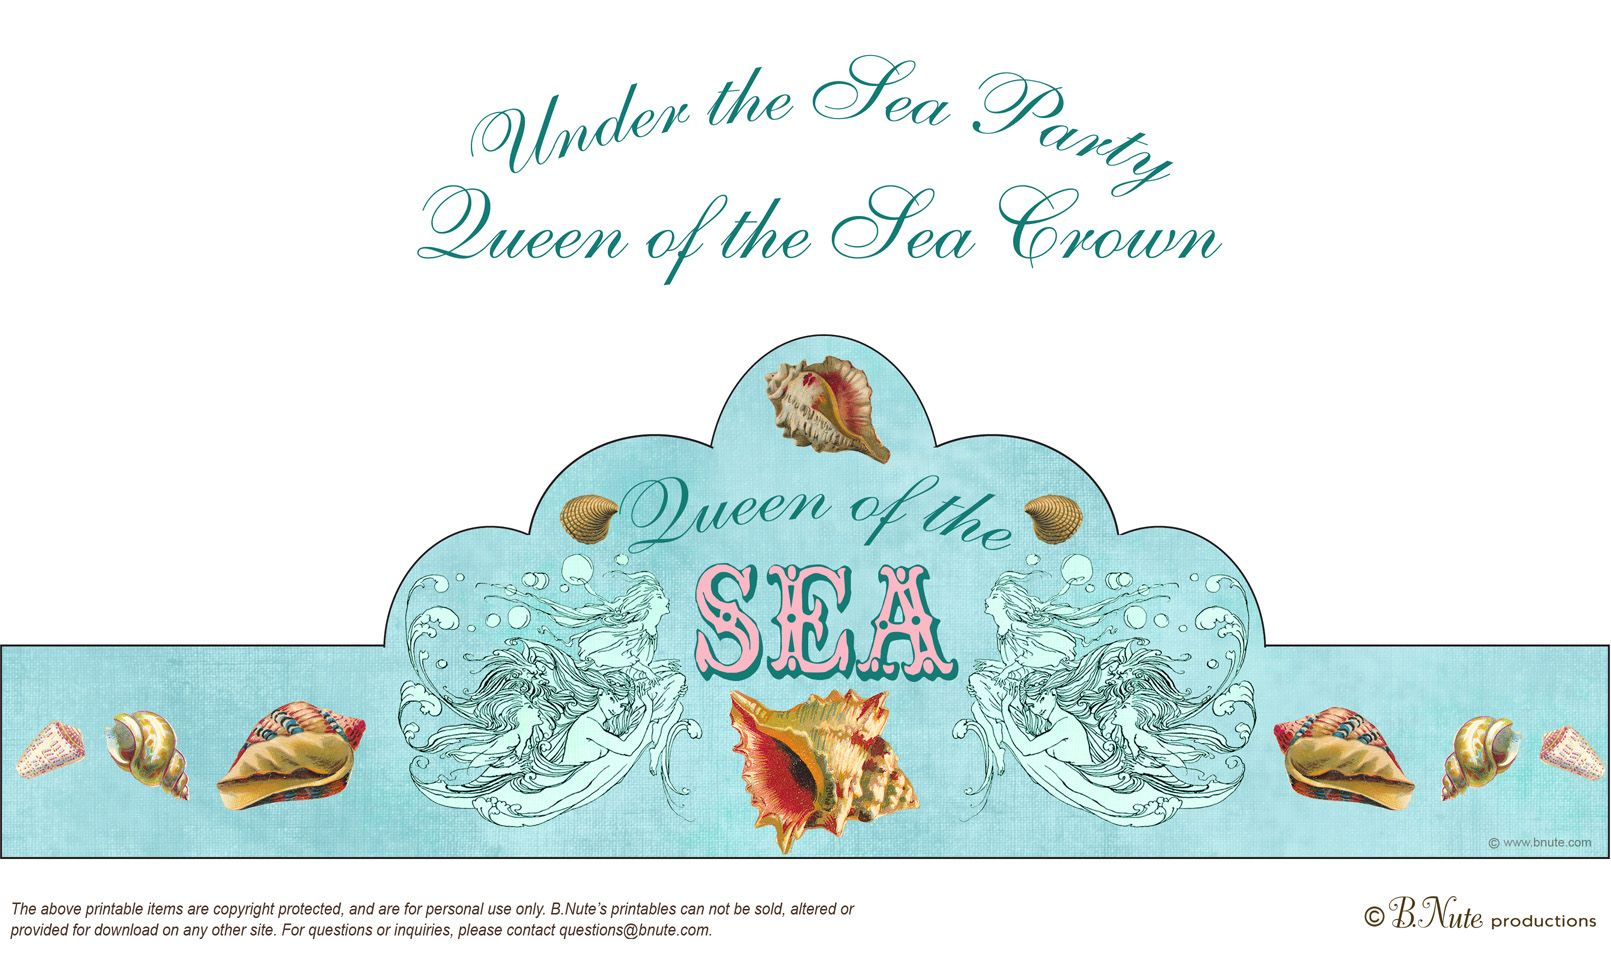 Under The Sea Party A Free Printable Crown Perfect For You To Wear On Your Special Day